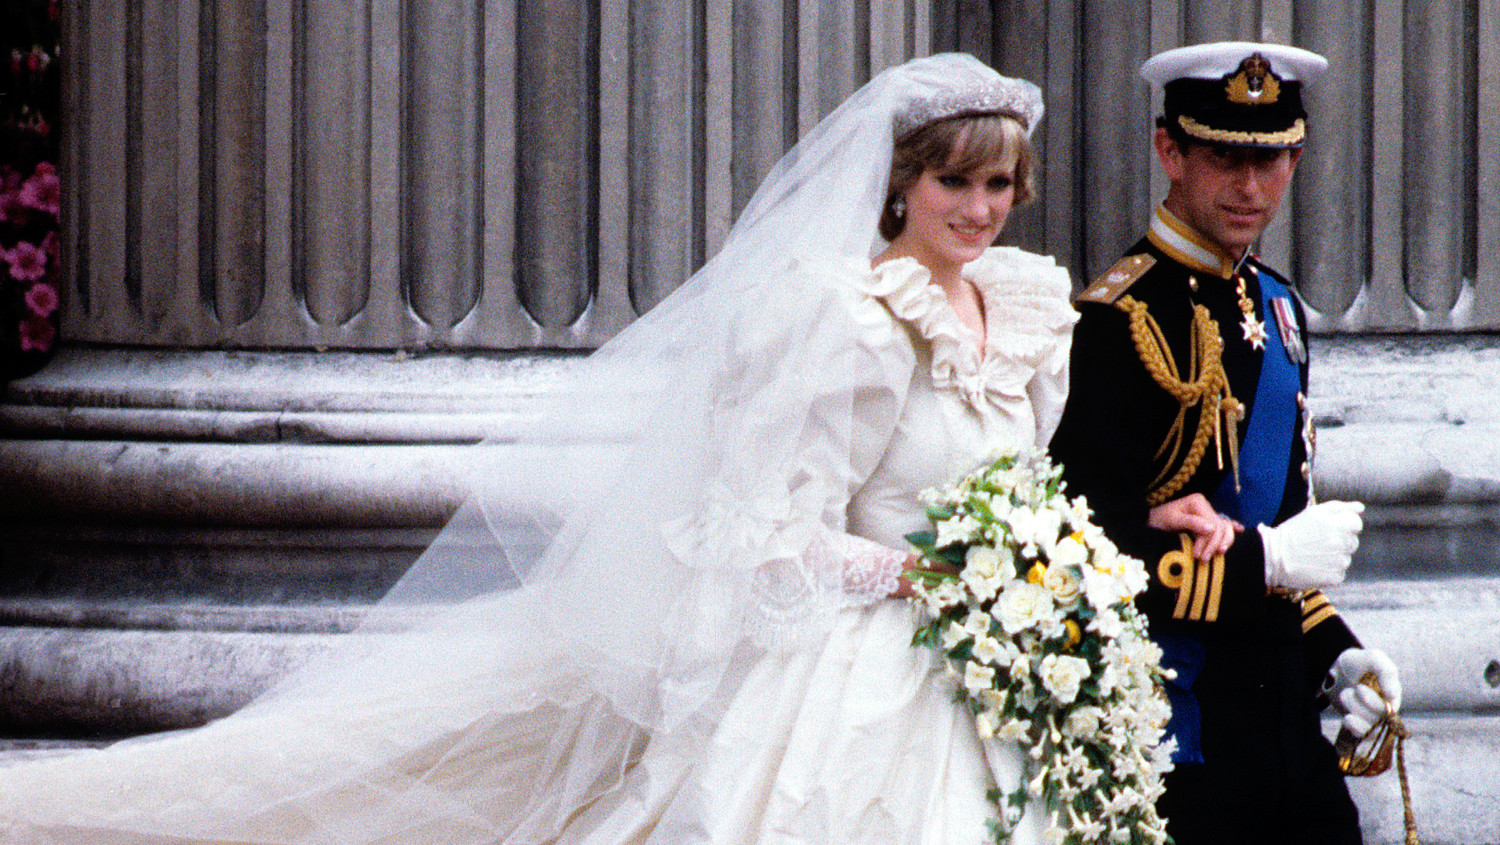 lady di wedding cake the story princess diana s iconic wedding dress 16703